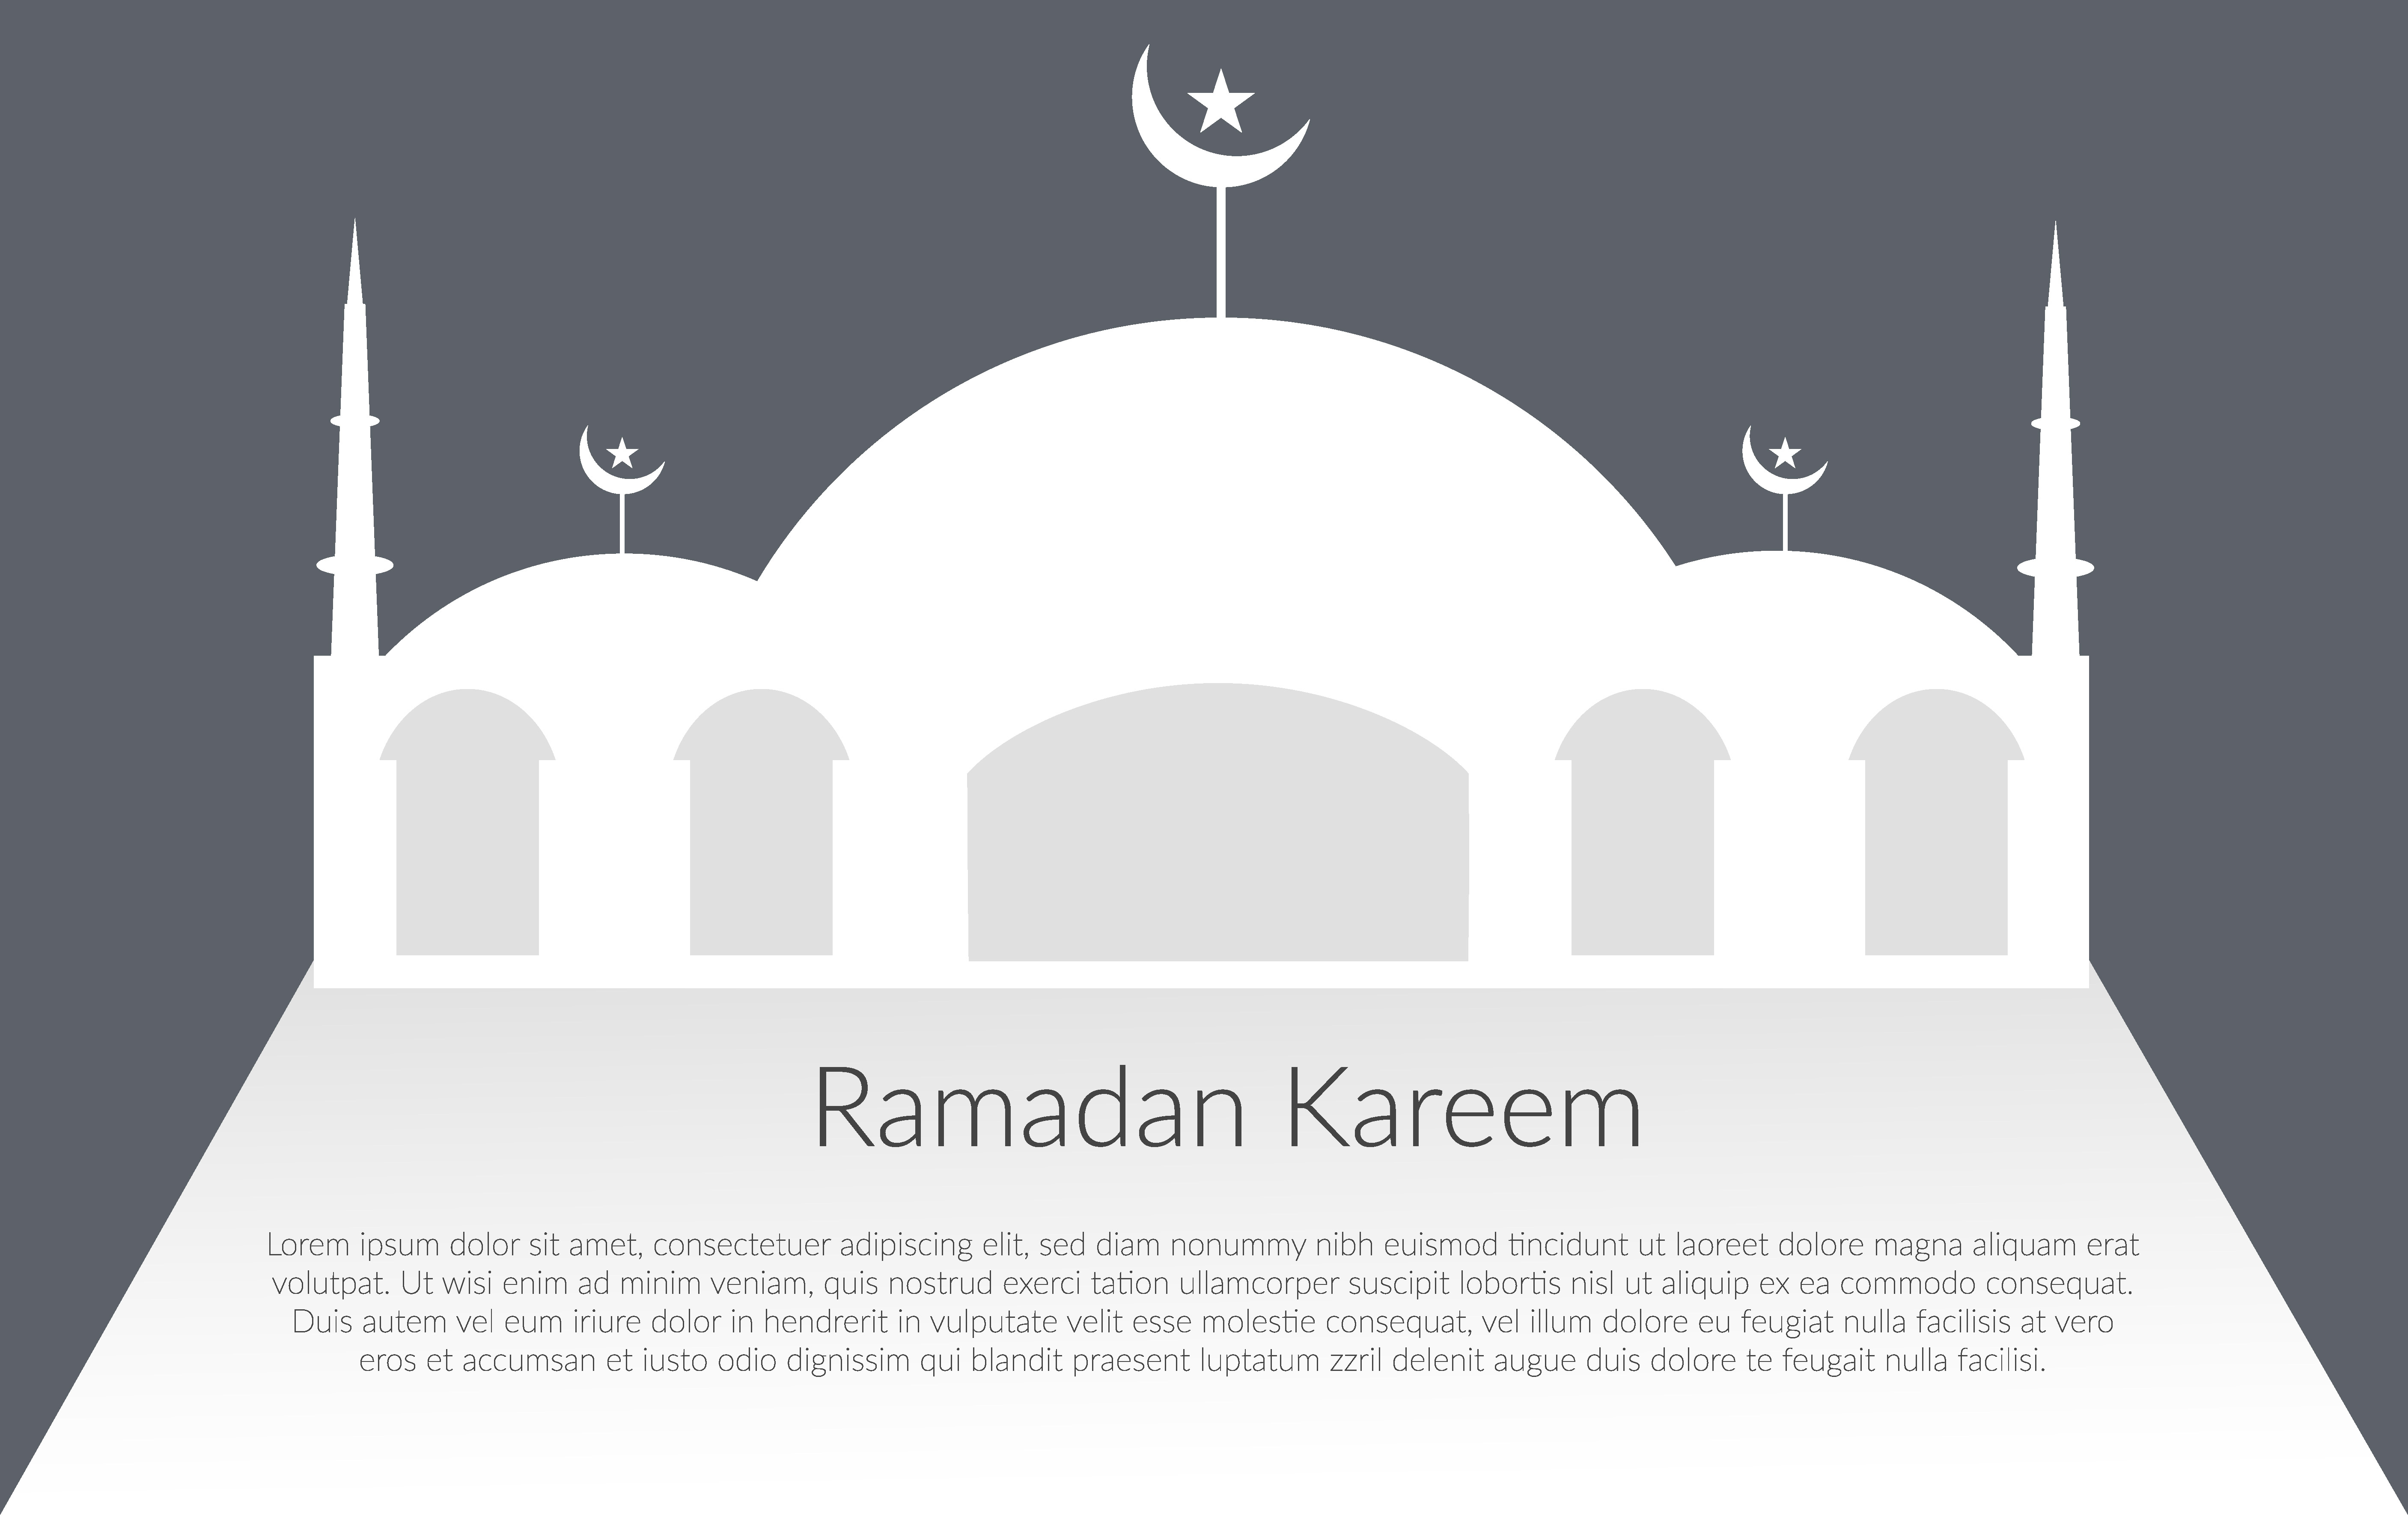 Download Free Ramadan Kareem Mosque Graphic By Usmanfirdaus446 Creative Fabrica for Cricut Explore, Silhouette and other cutting machines.